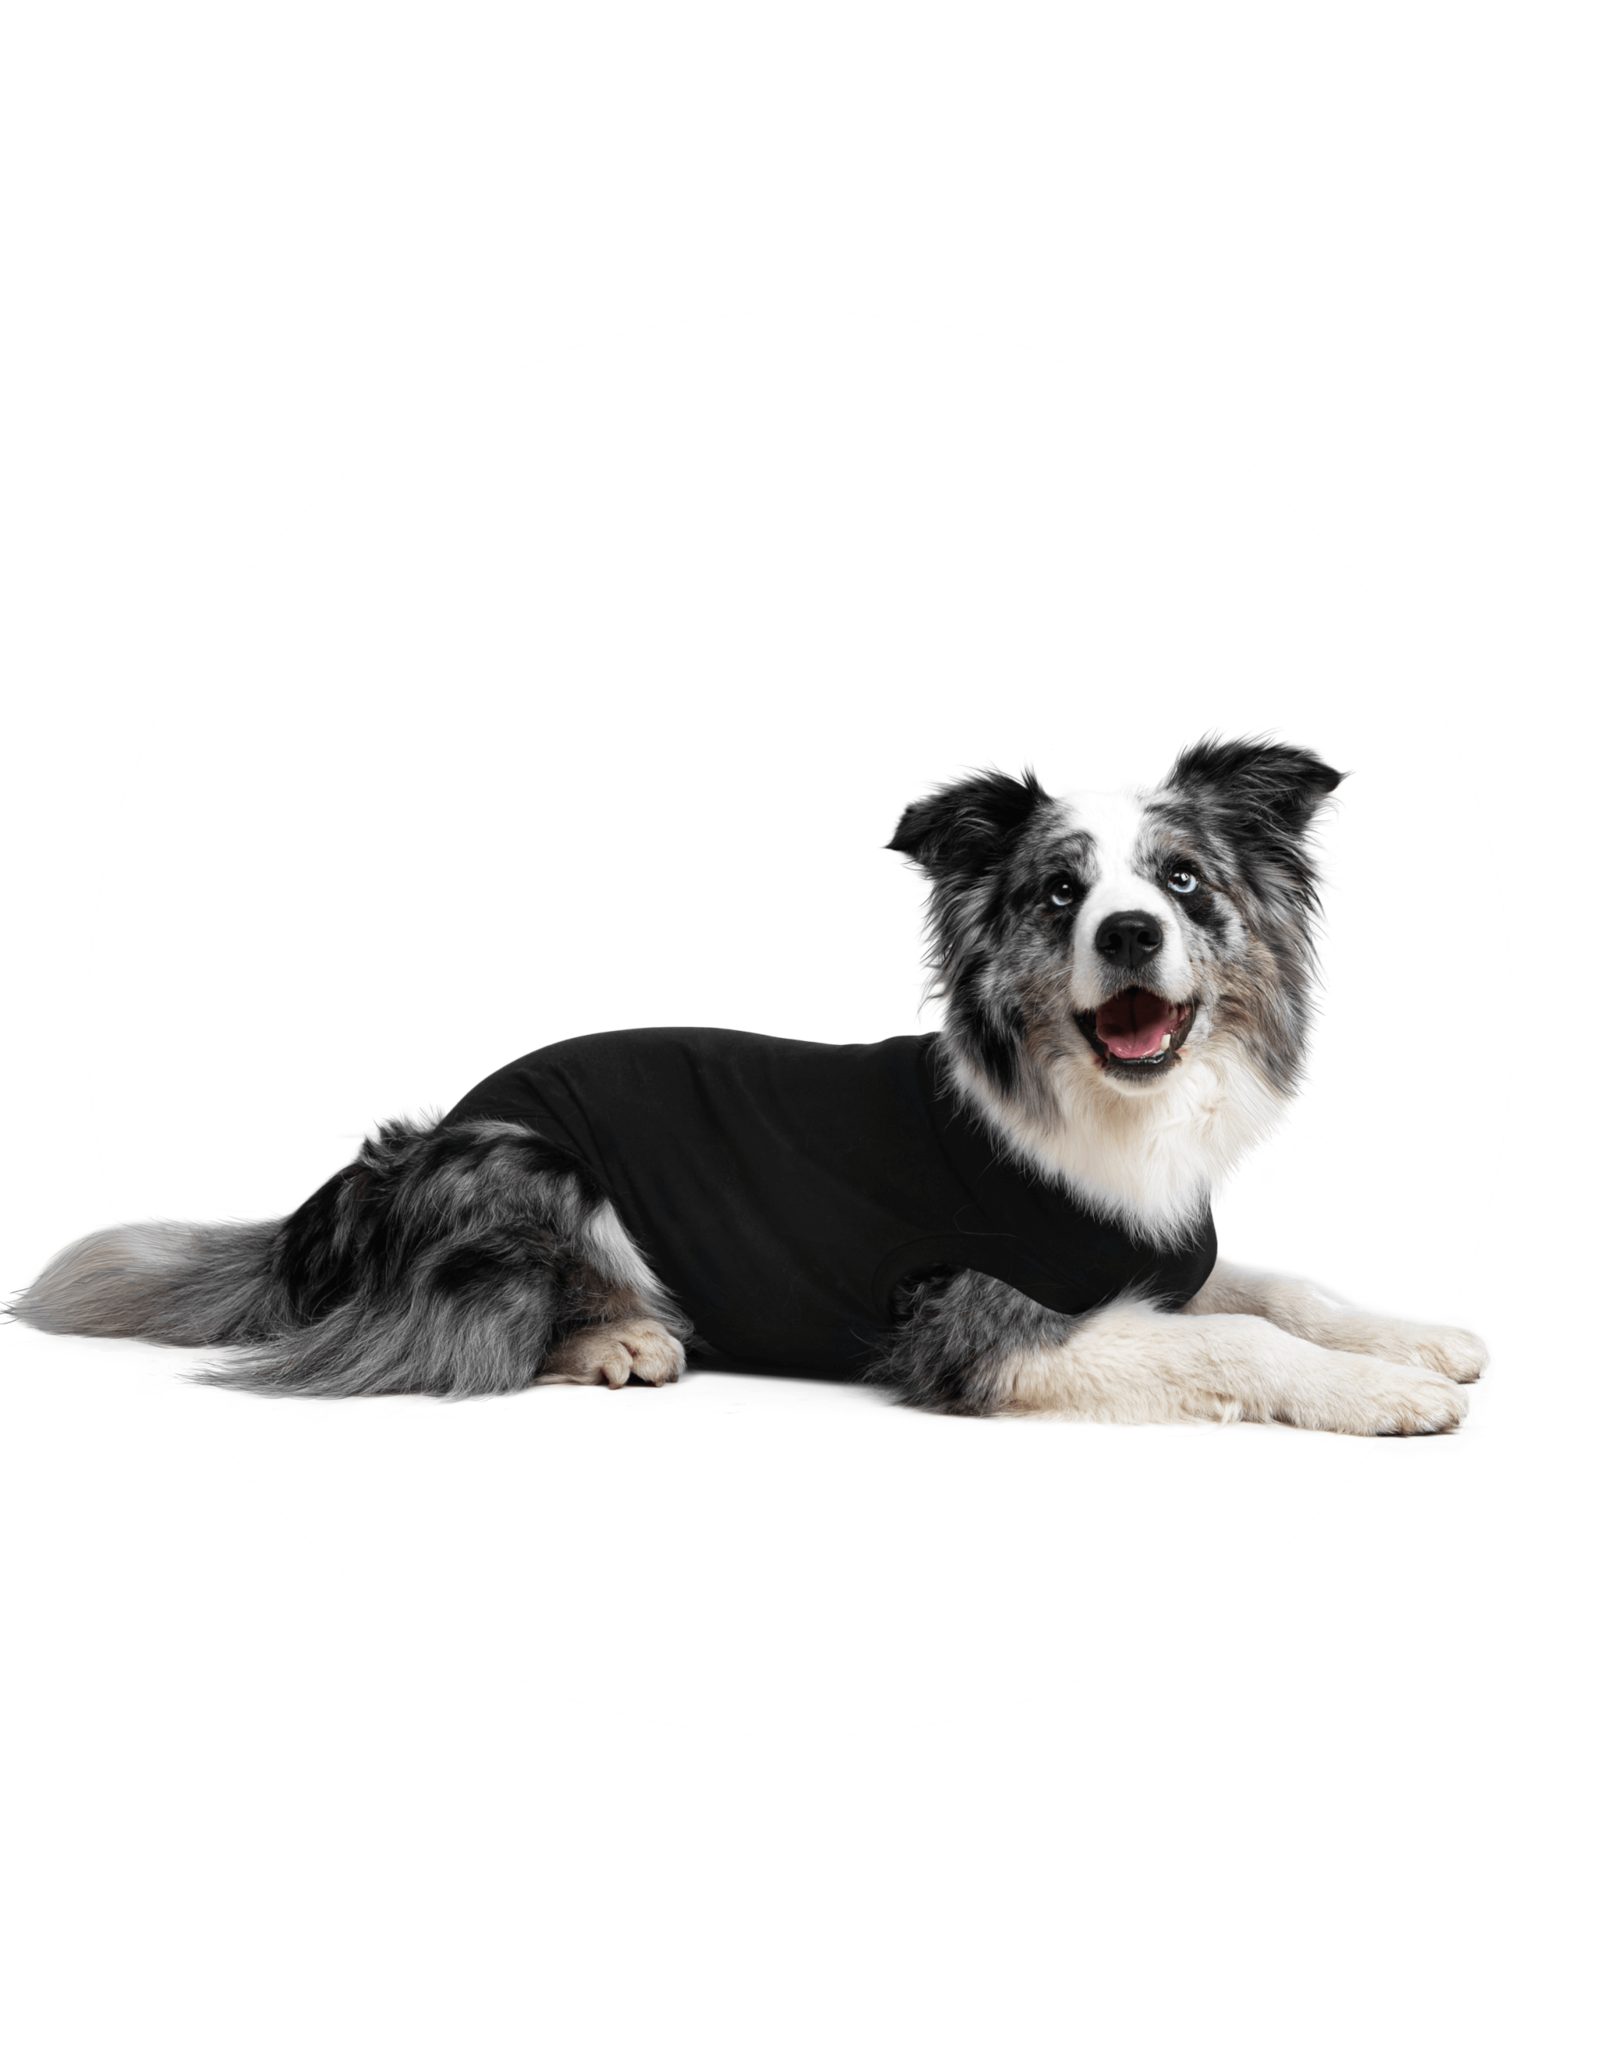 Suitical SUITICAL BLACK RECOVERY SUIT FOR DOGS